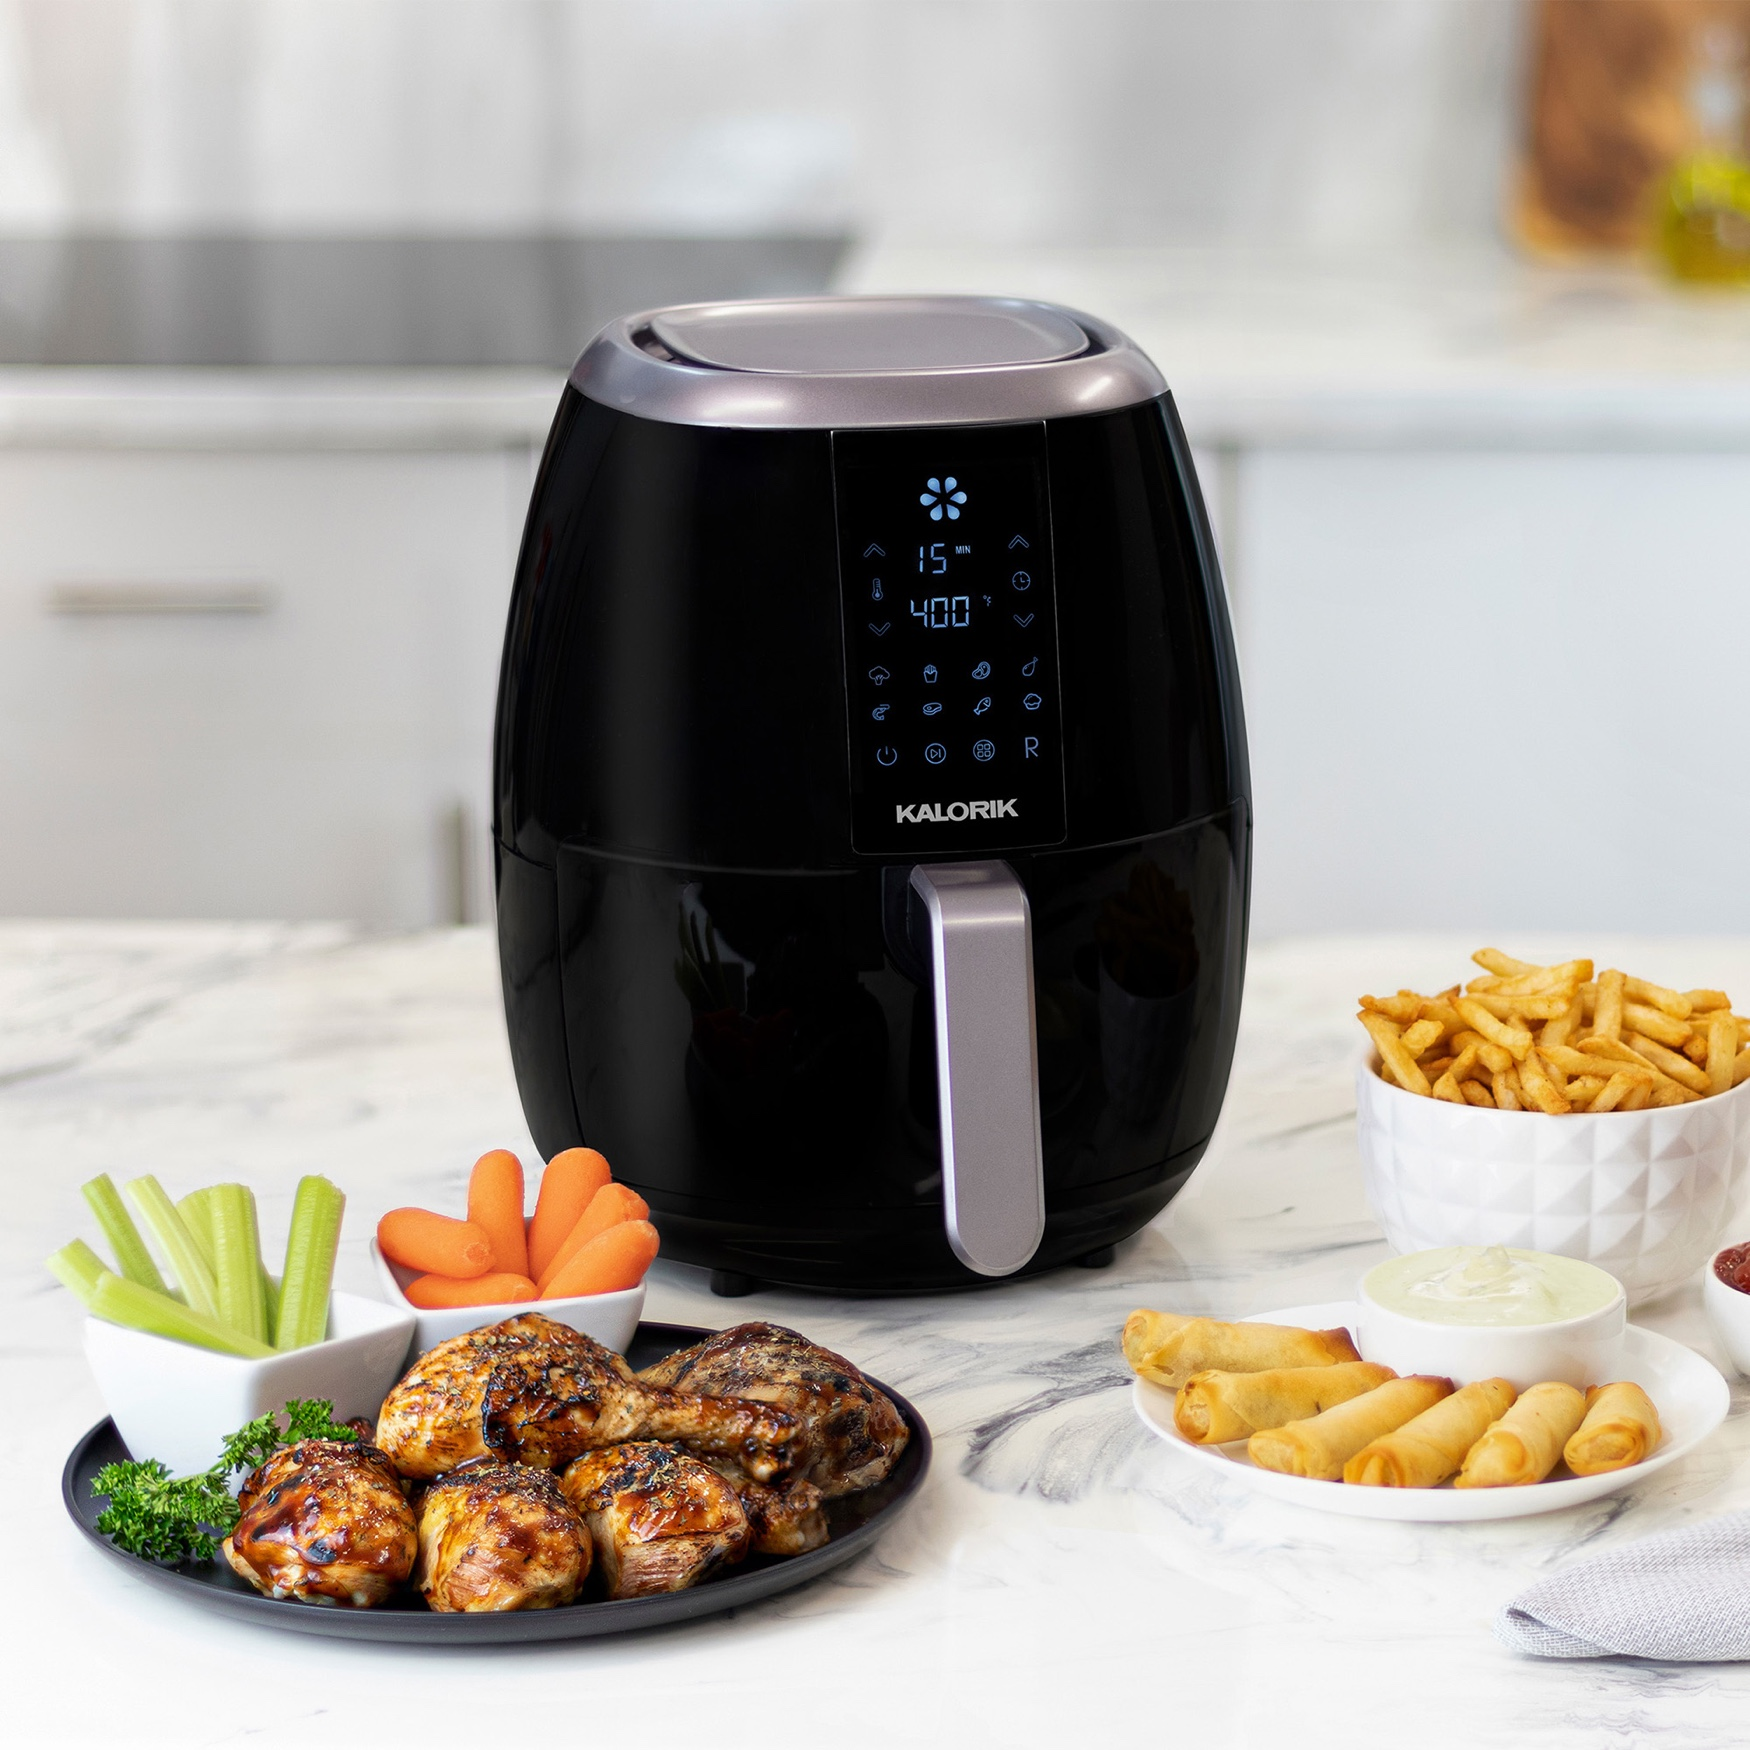 Kalorik 3.0 Quart Digital Airfryer by Kalorik, BLACK